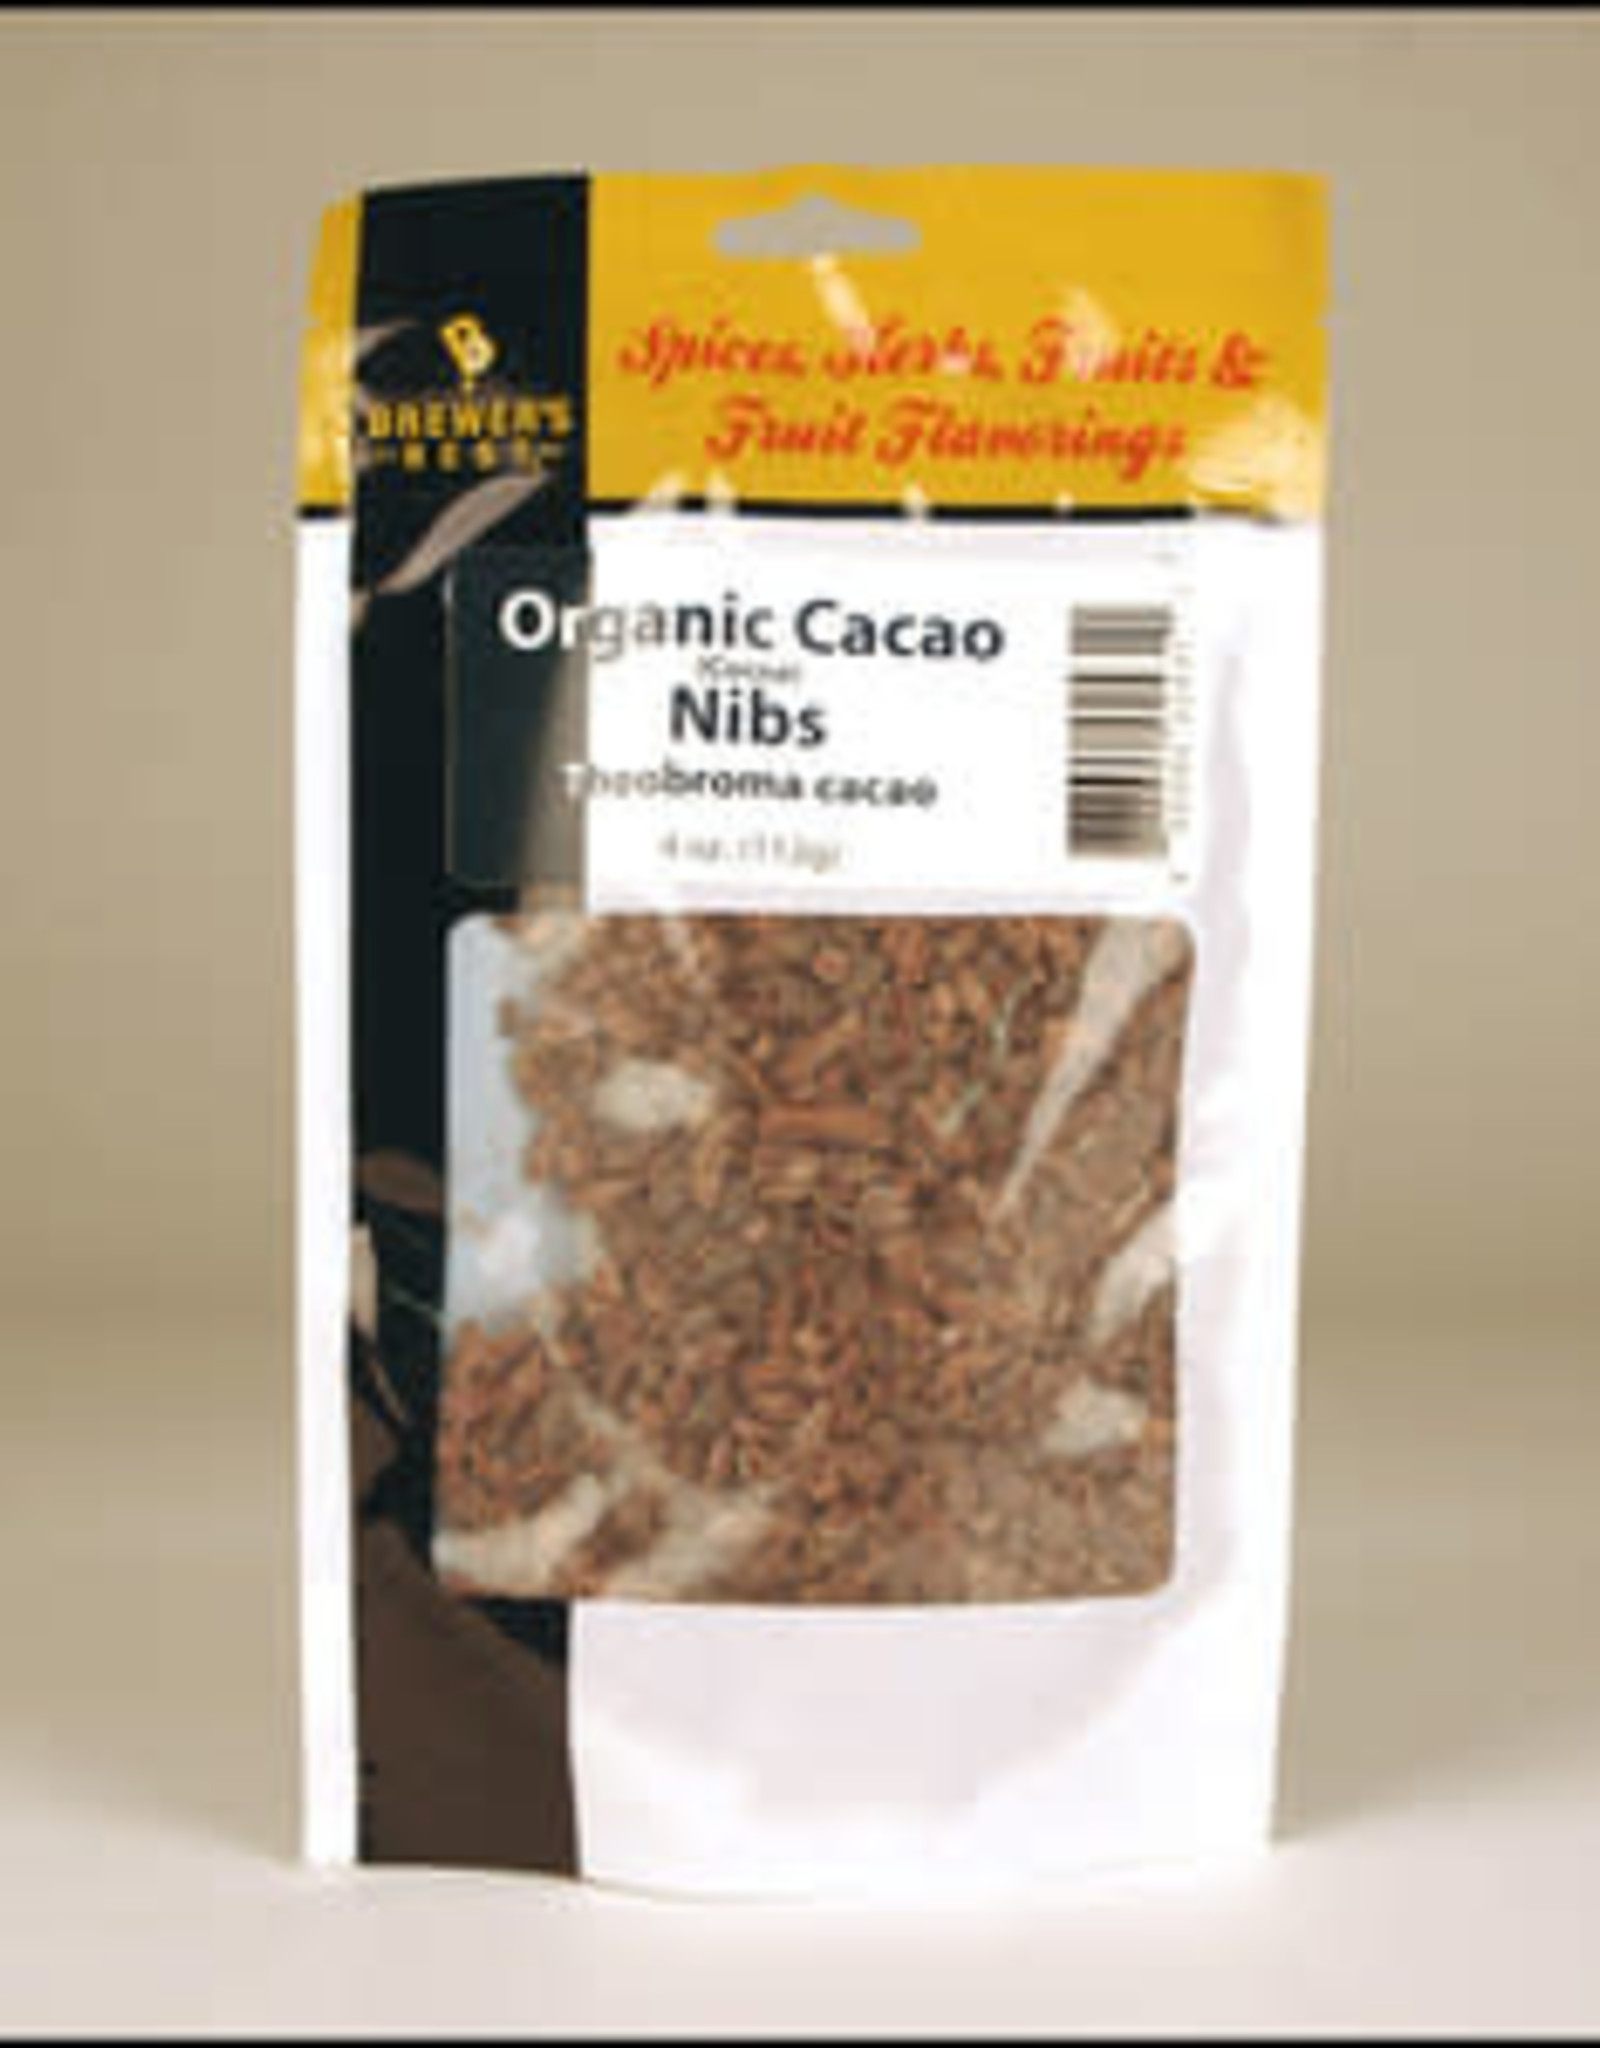 BREWER'S BEST ORGANIC CACAO NIBS 4 OZ